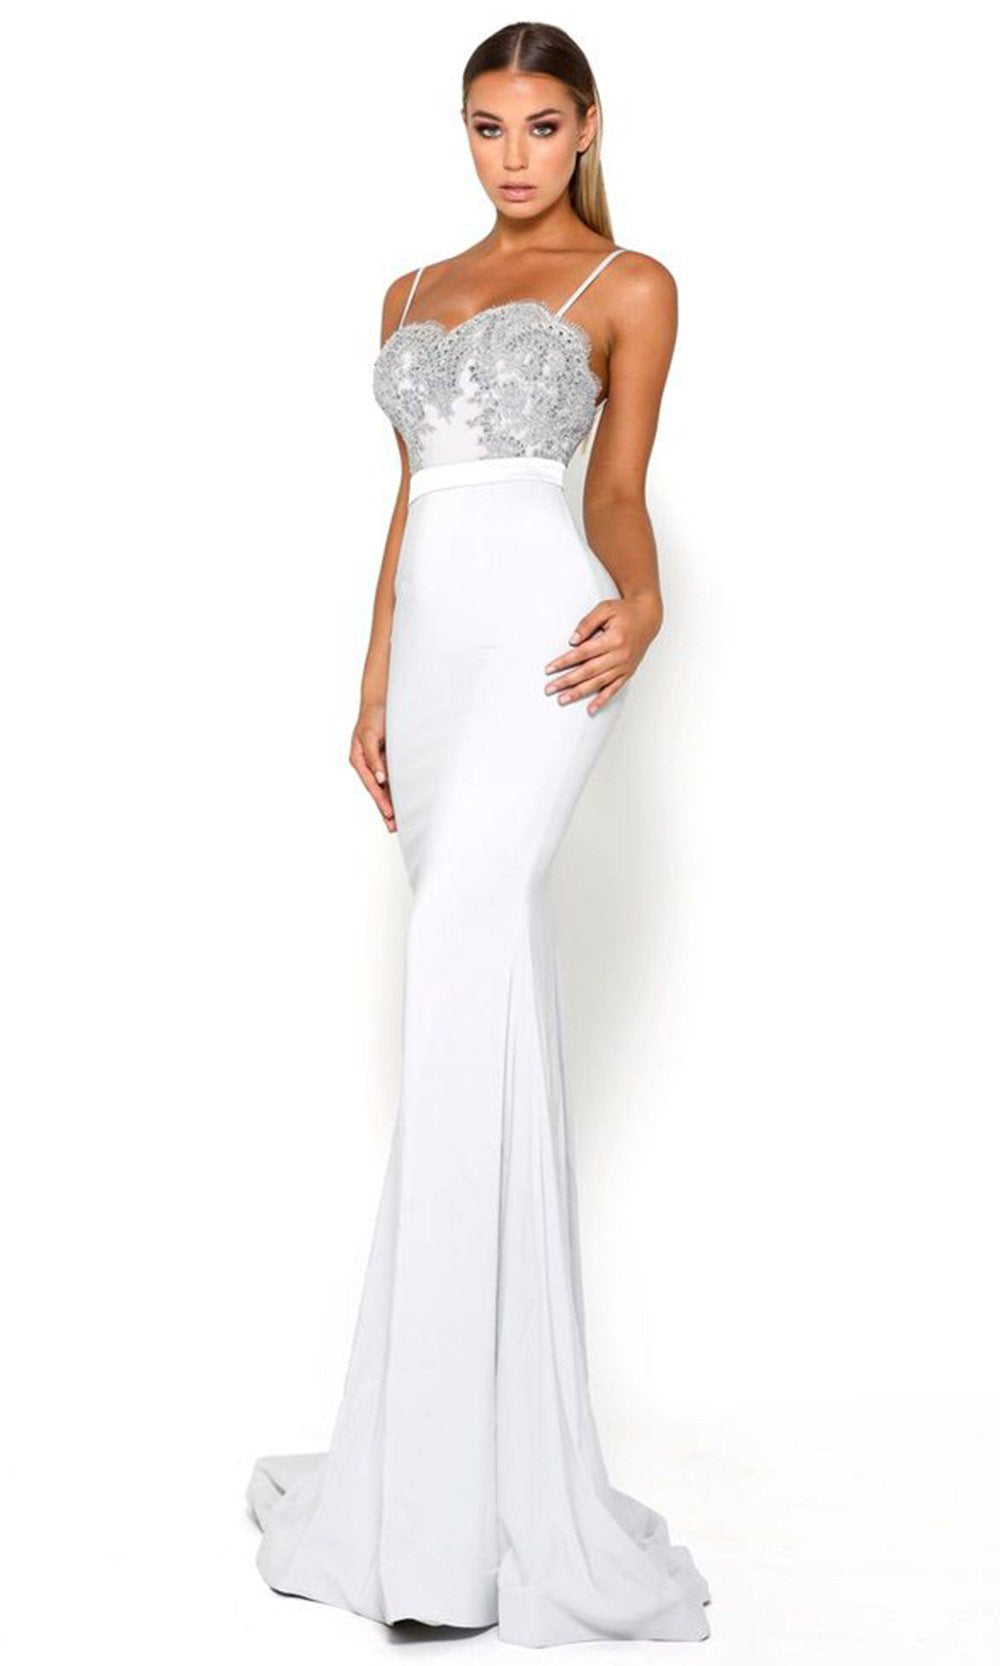 Portia and Scarlett - Lody Sienna With Lace Train 4 Embellished Gown In Silver